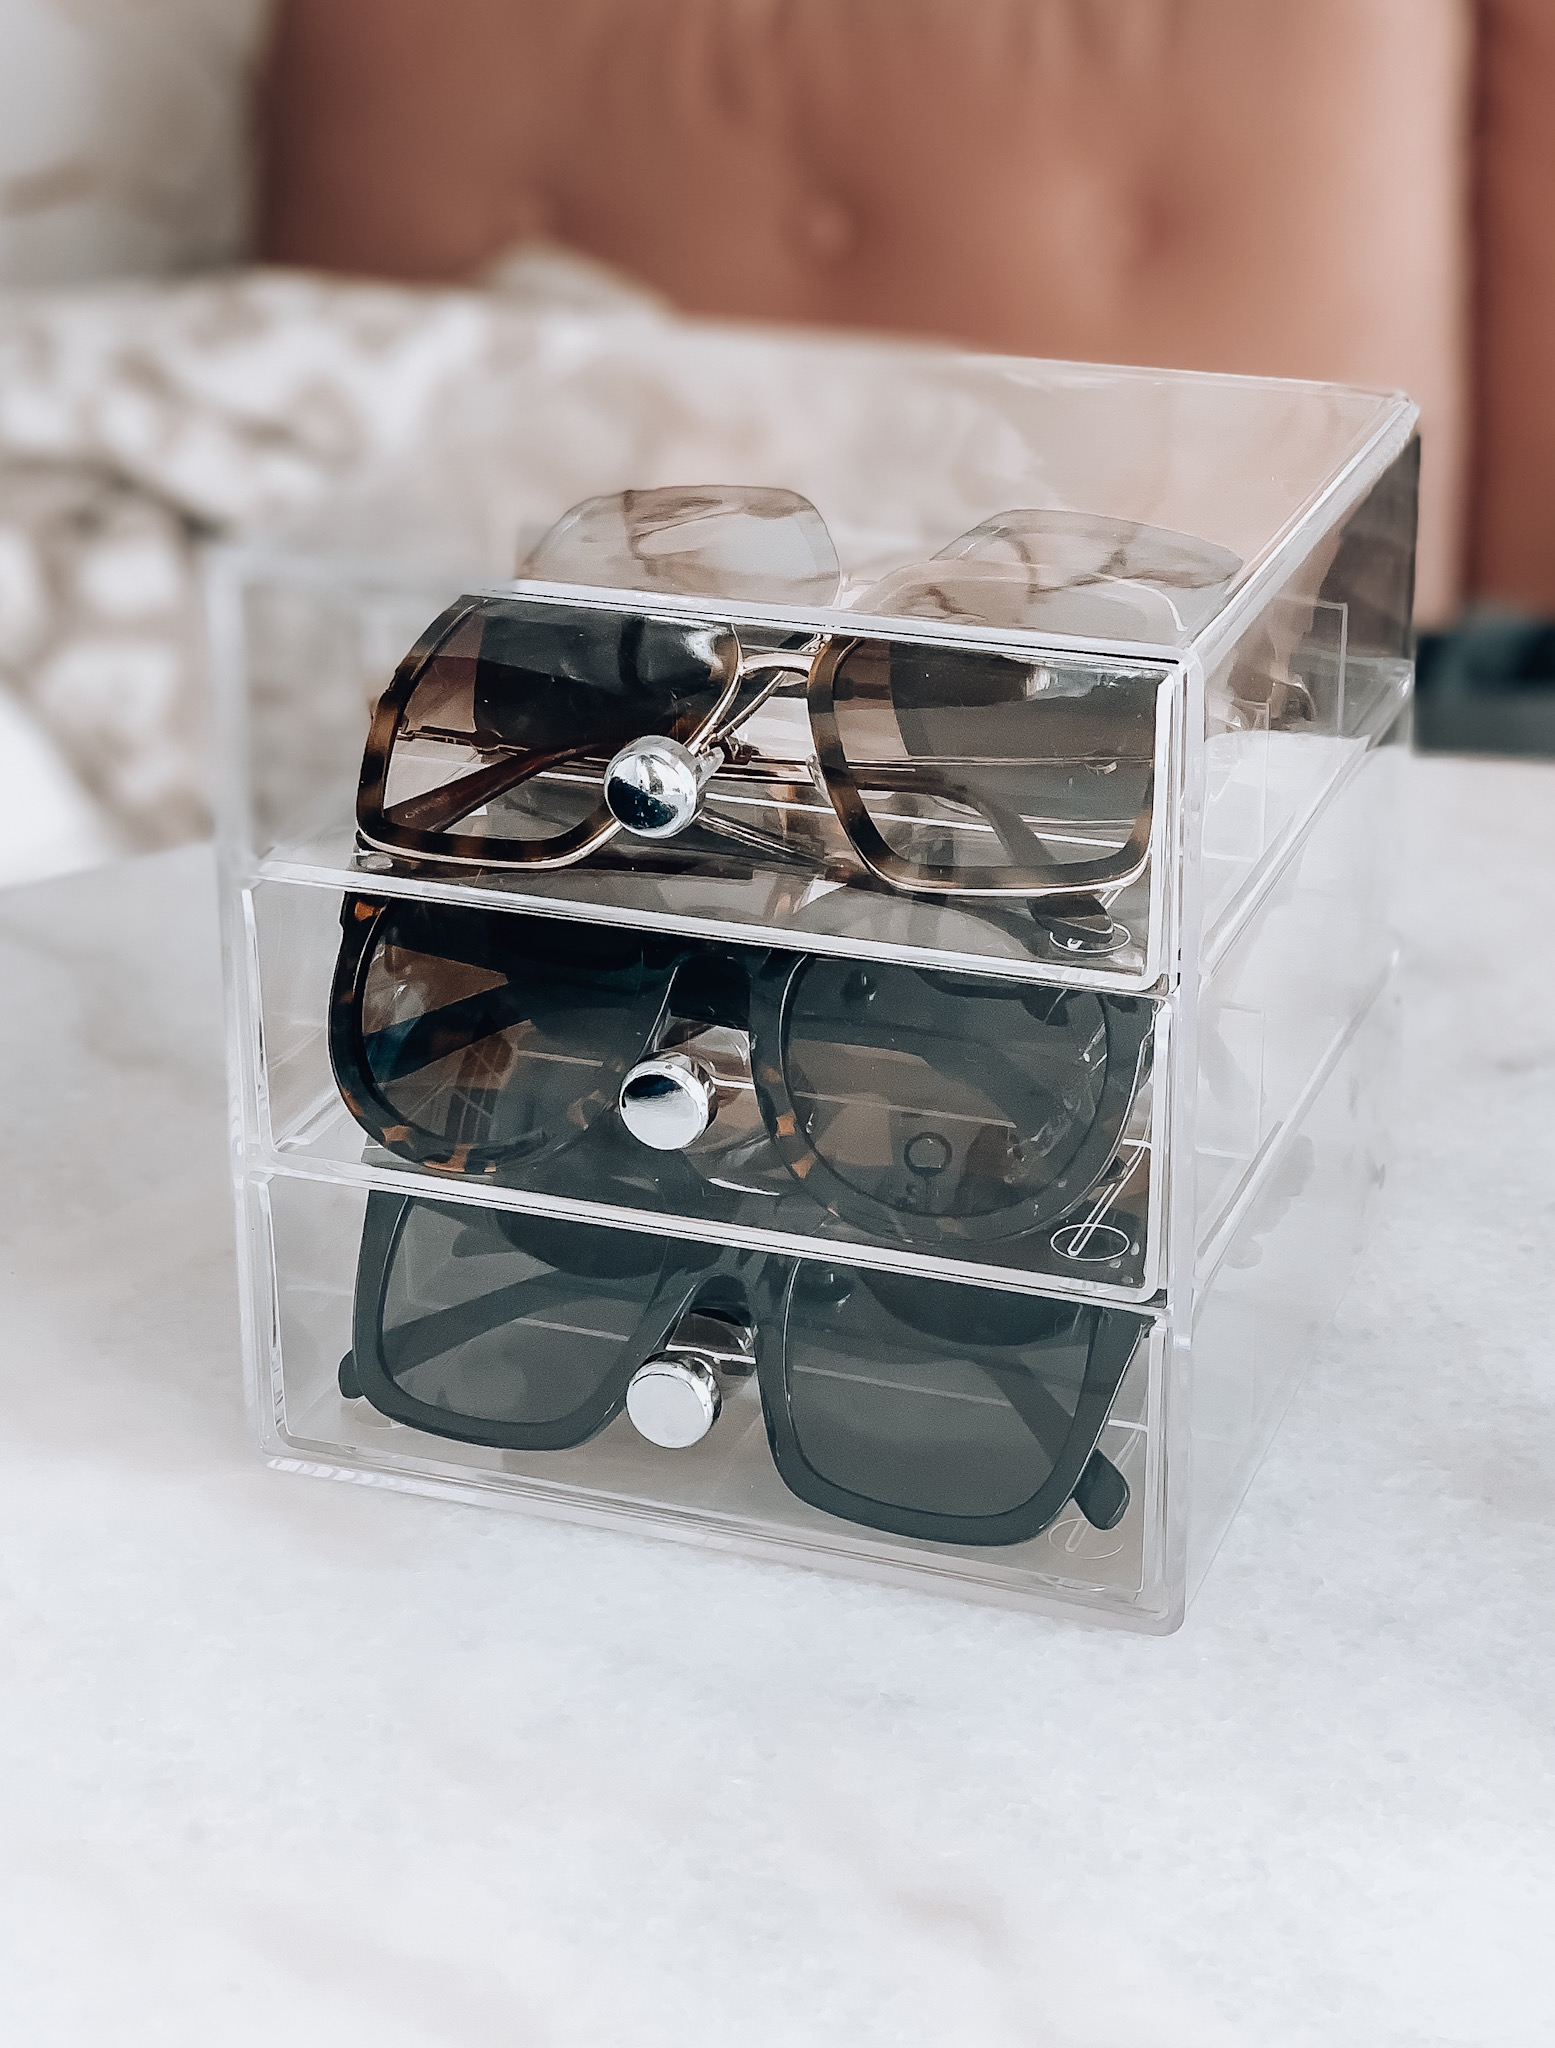 acrylic amazon sunglass organizer